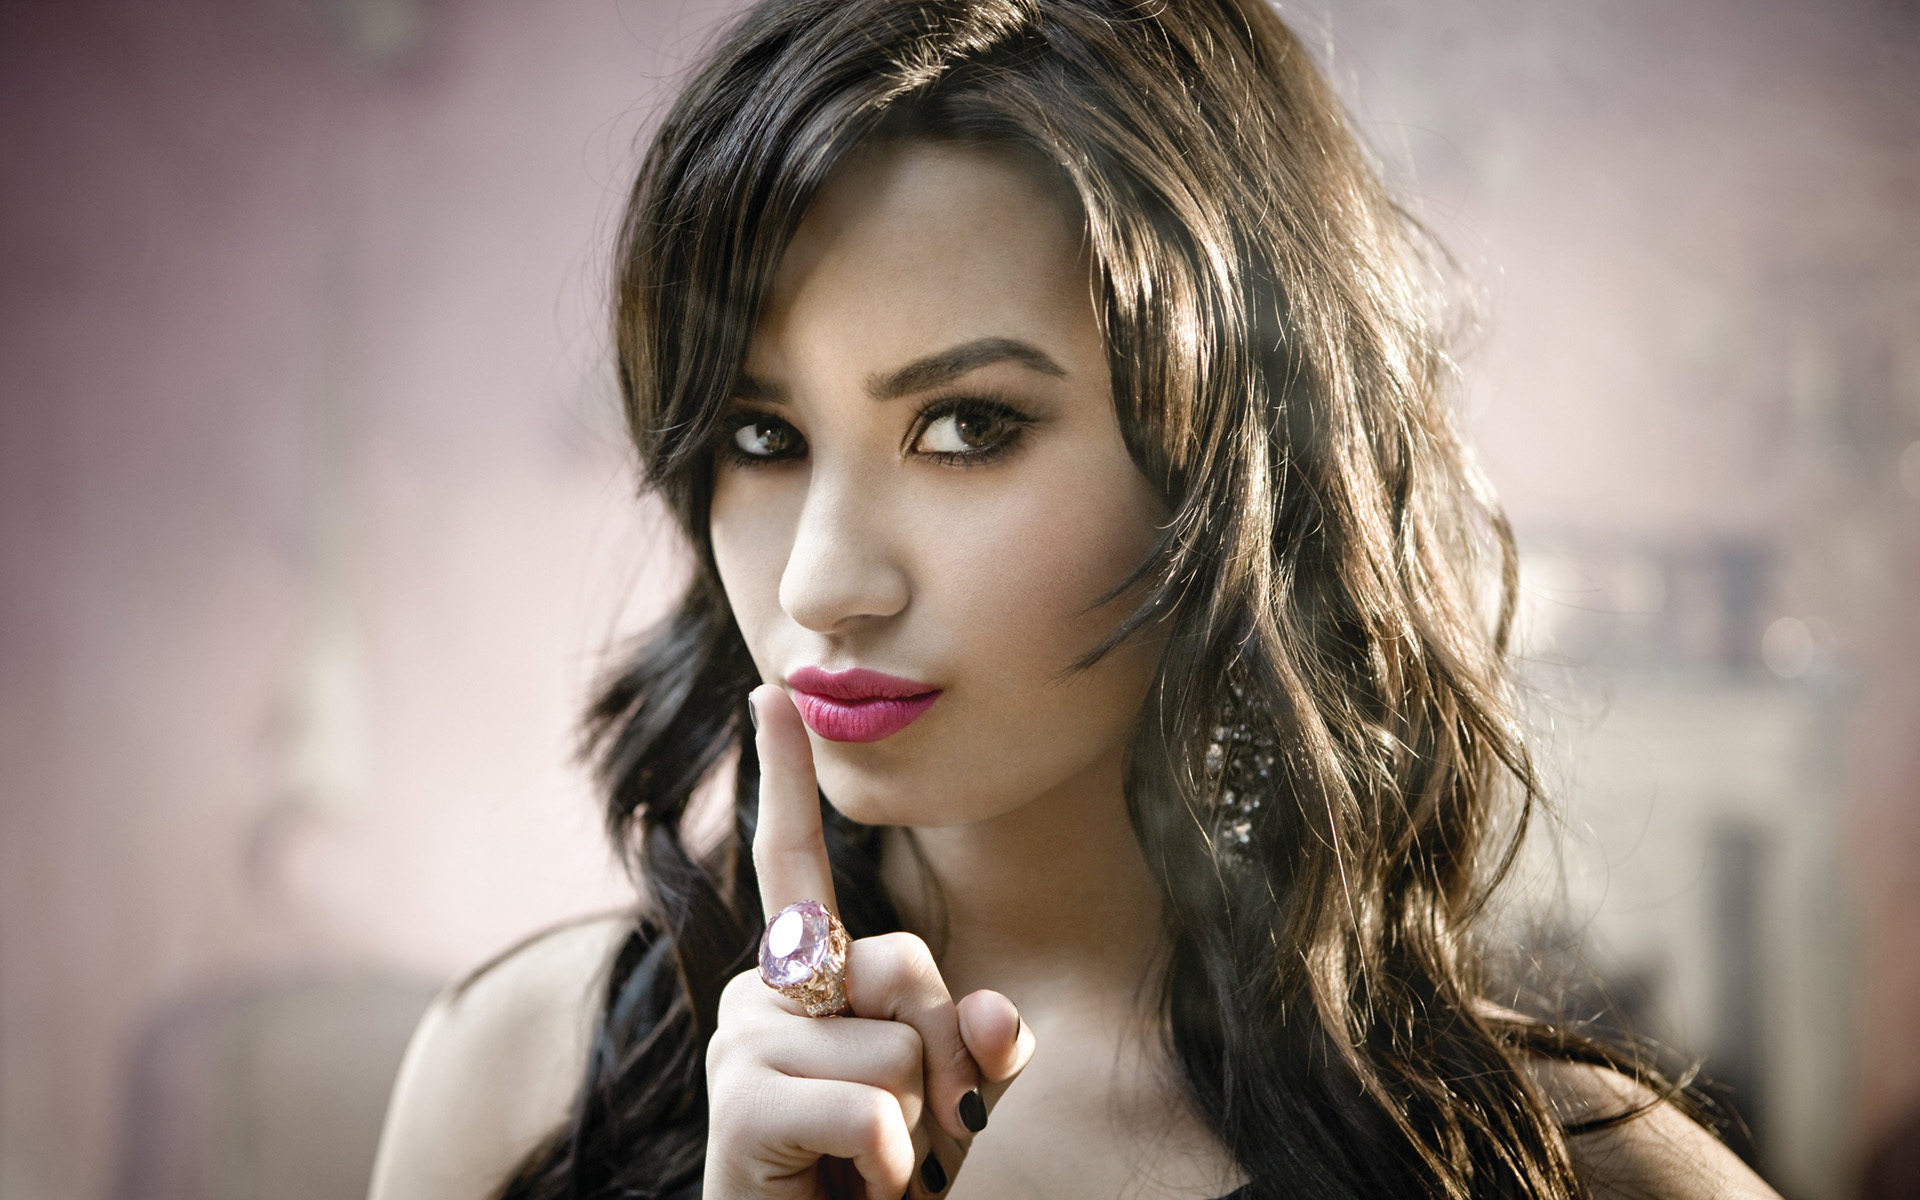 Demi Lovato in Here We Go Again 623.75 Kb